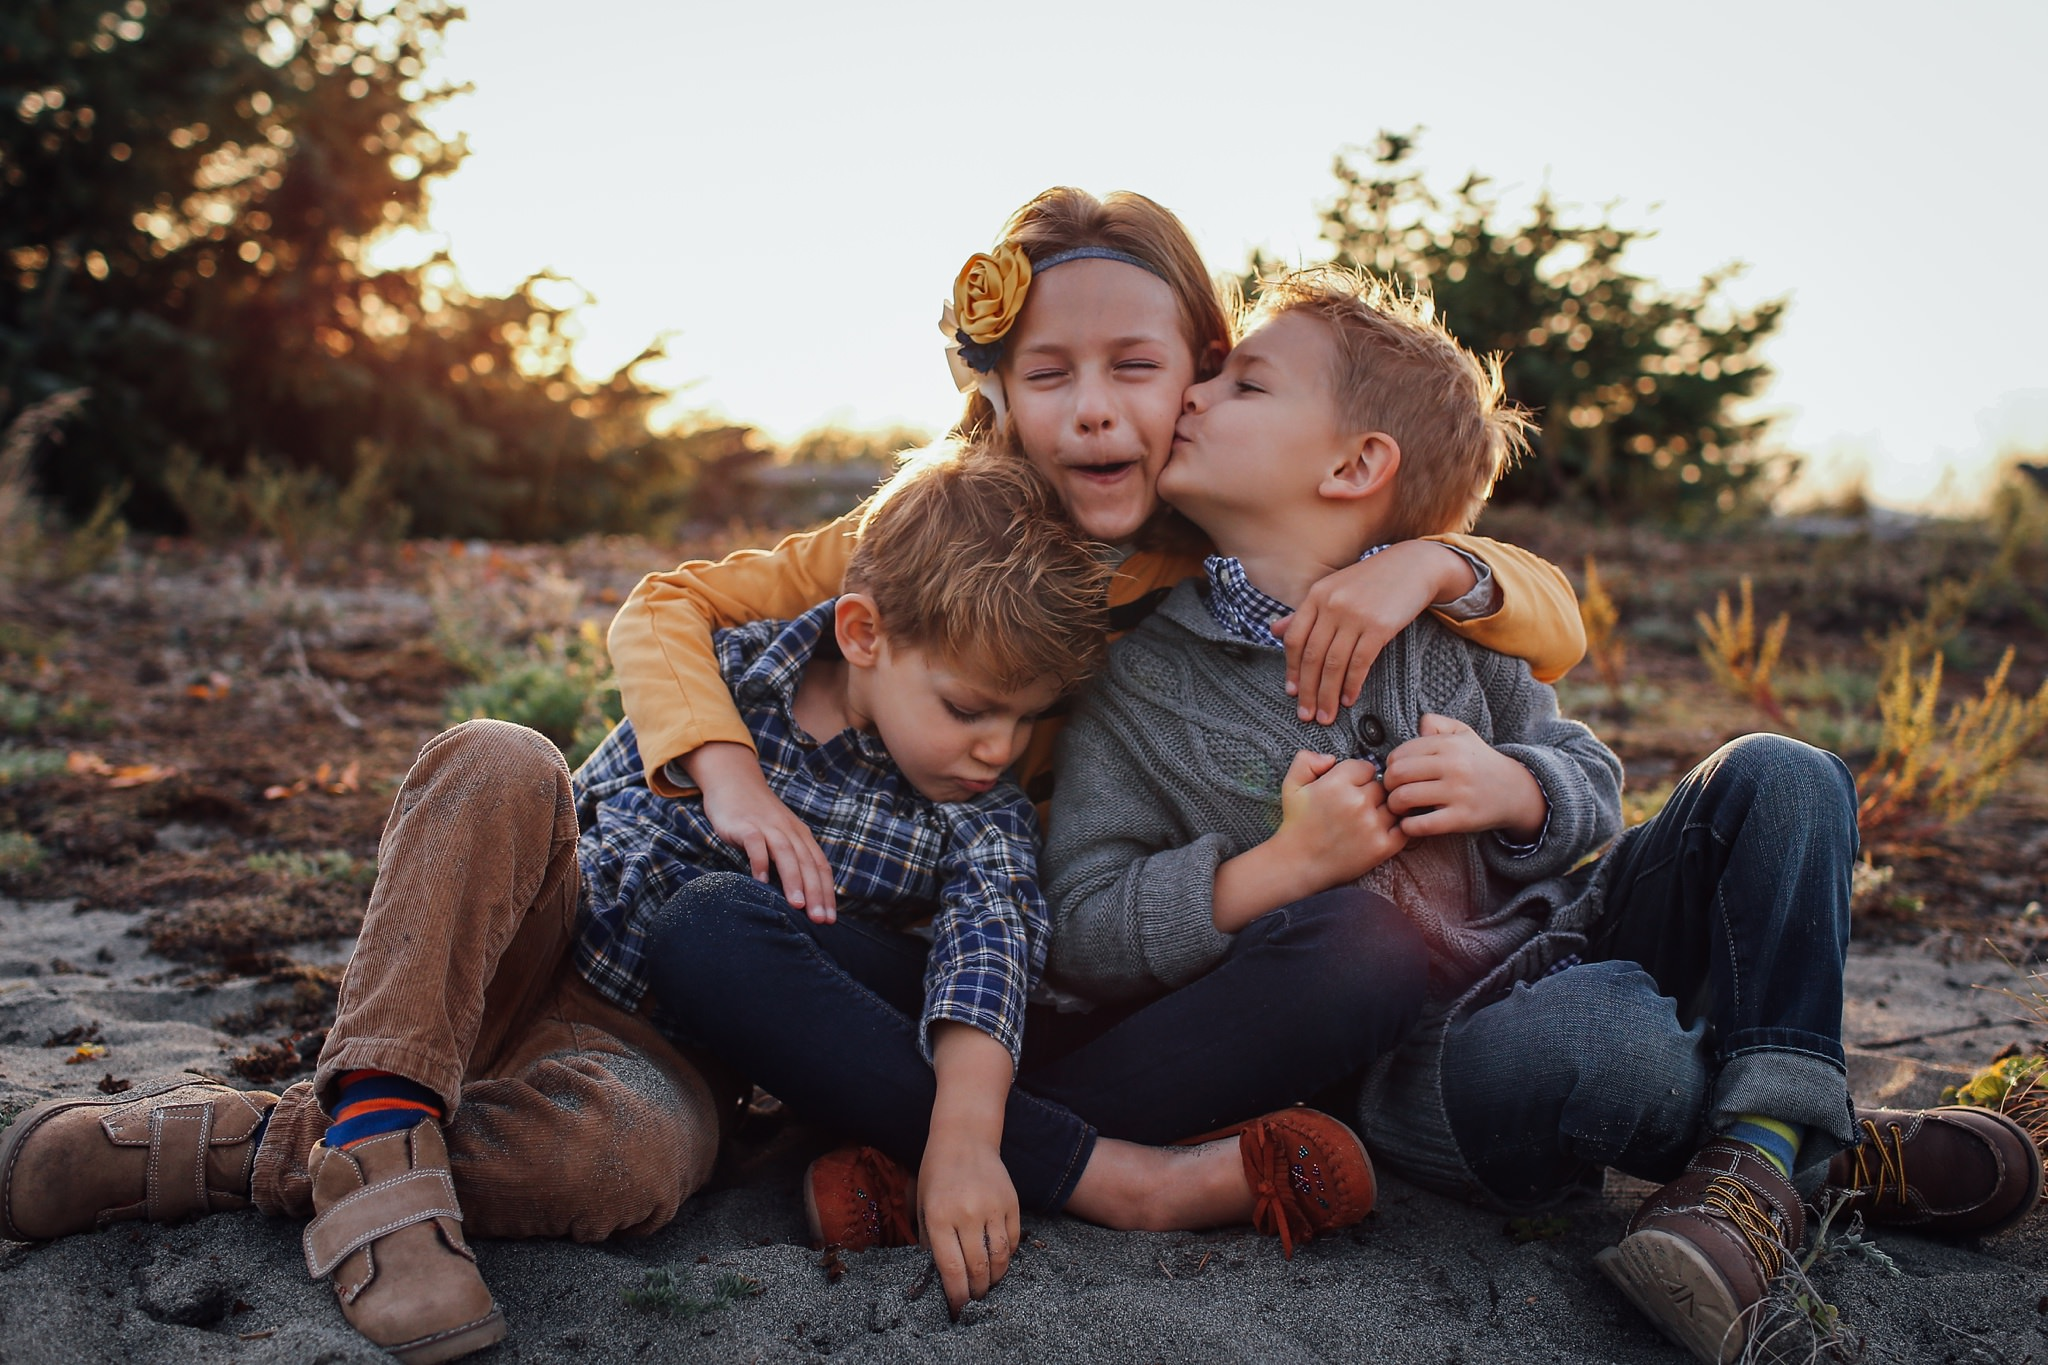 Whidbey-Island-Family-Photographer-Kara-Chappell-Photography_1188.jpg